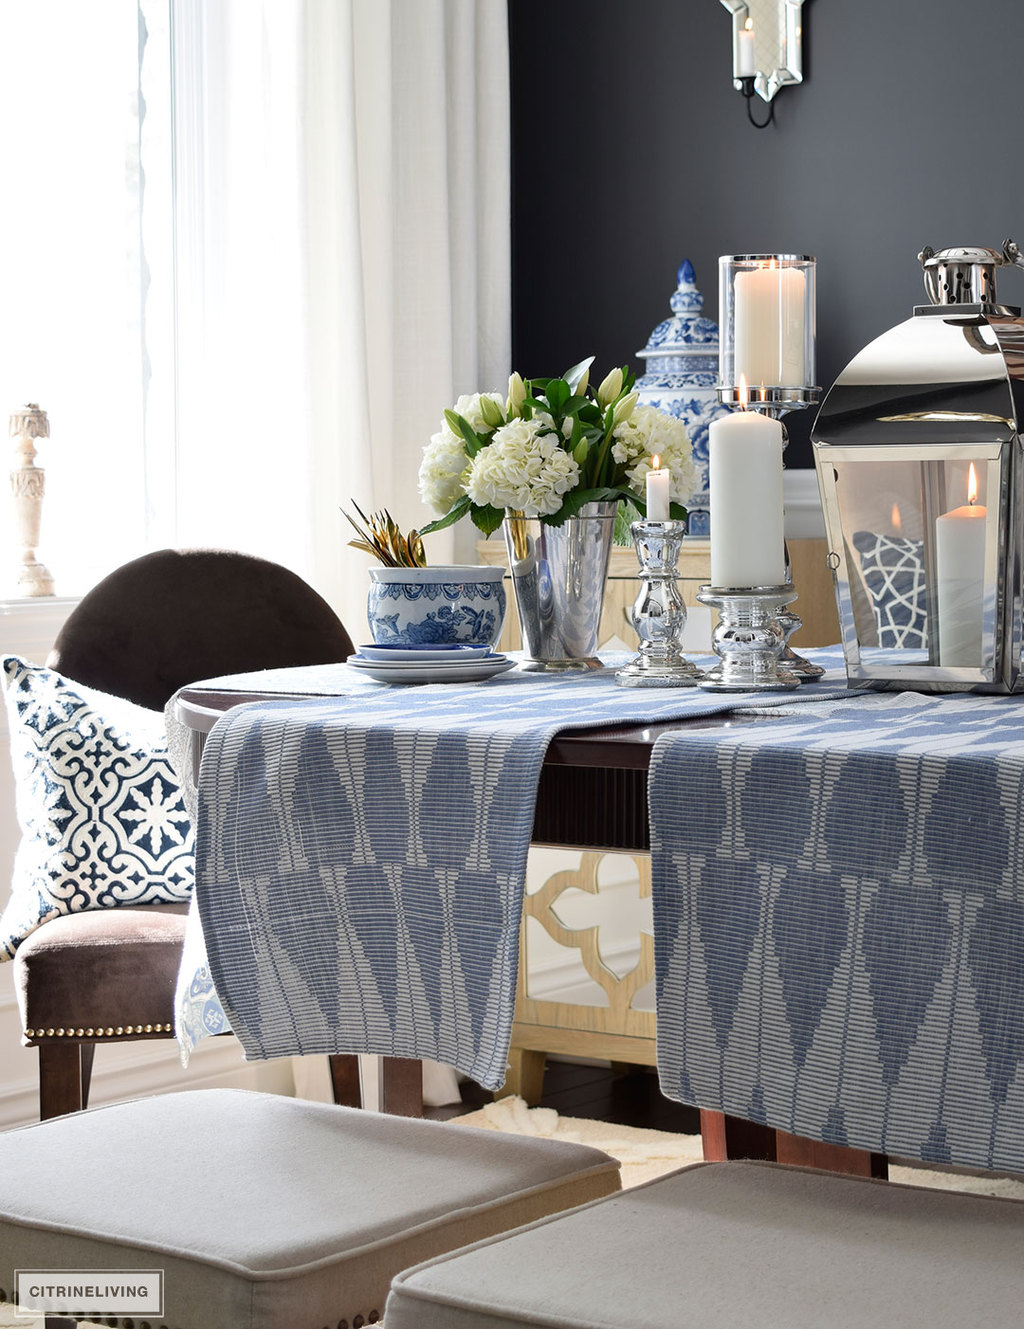 Our Spring Dining Room: FOURTEEN IDEAS TO STYLE YOUR HOME FOR SPRING